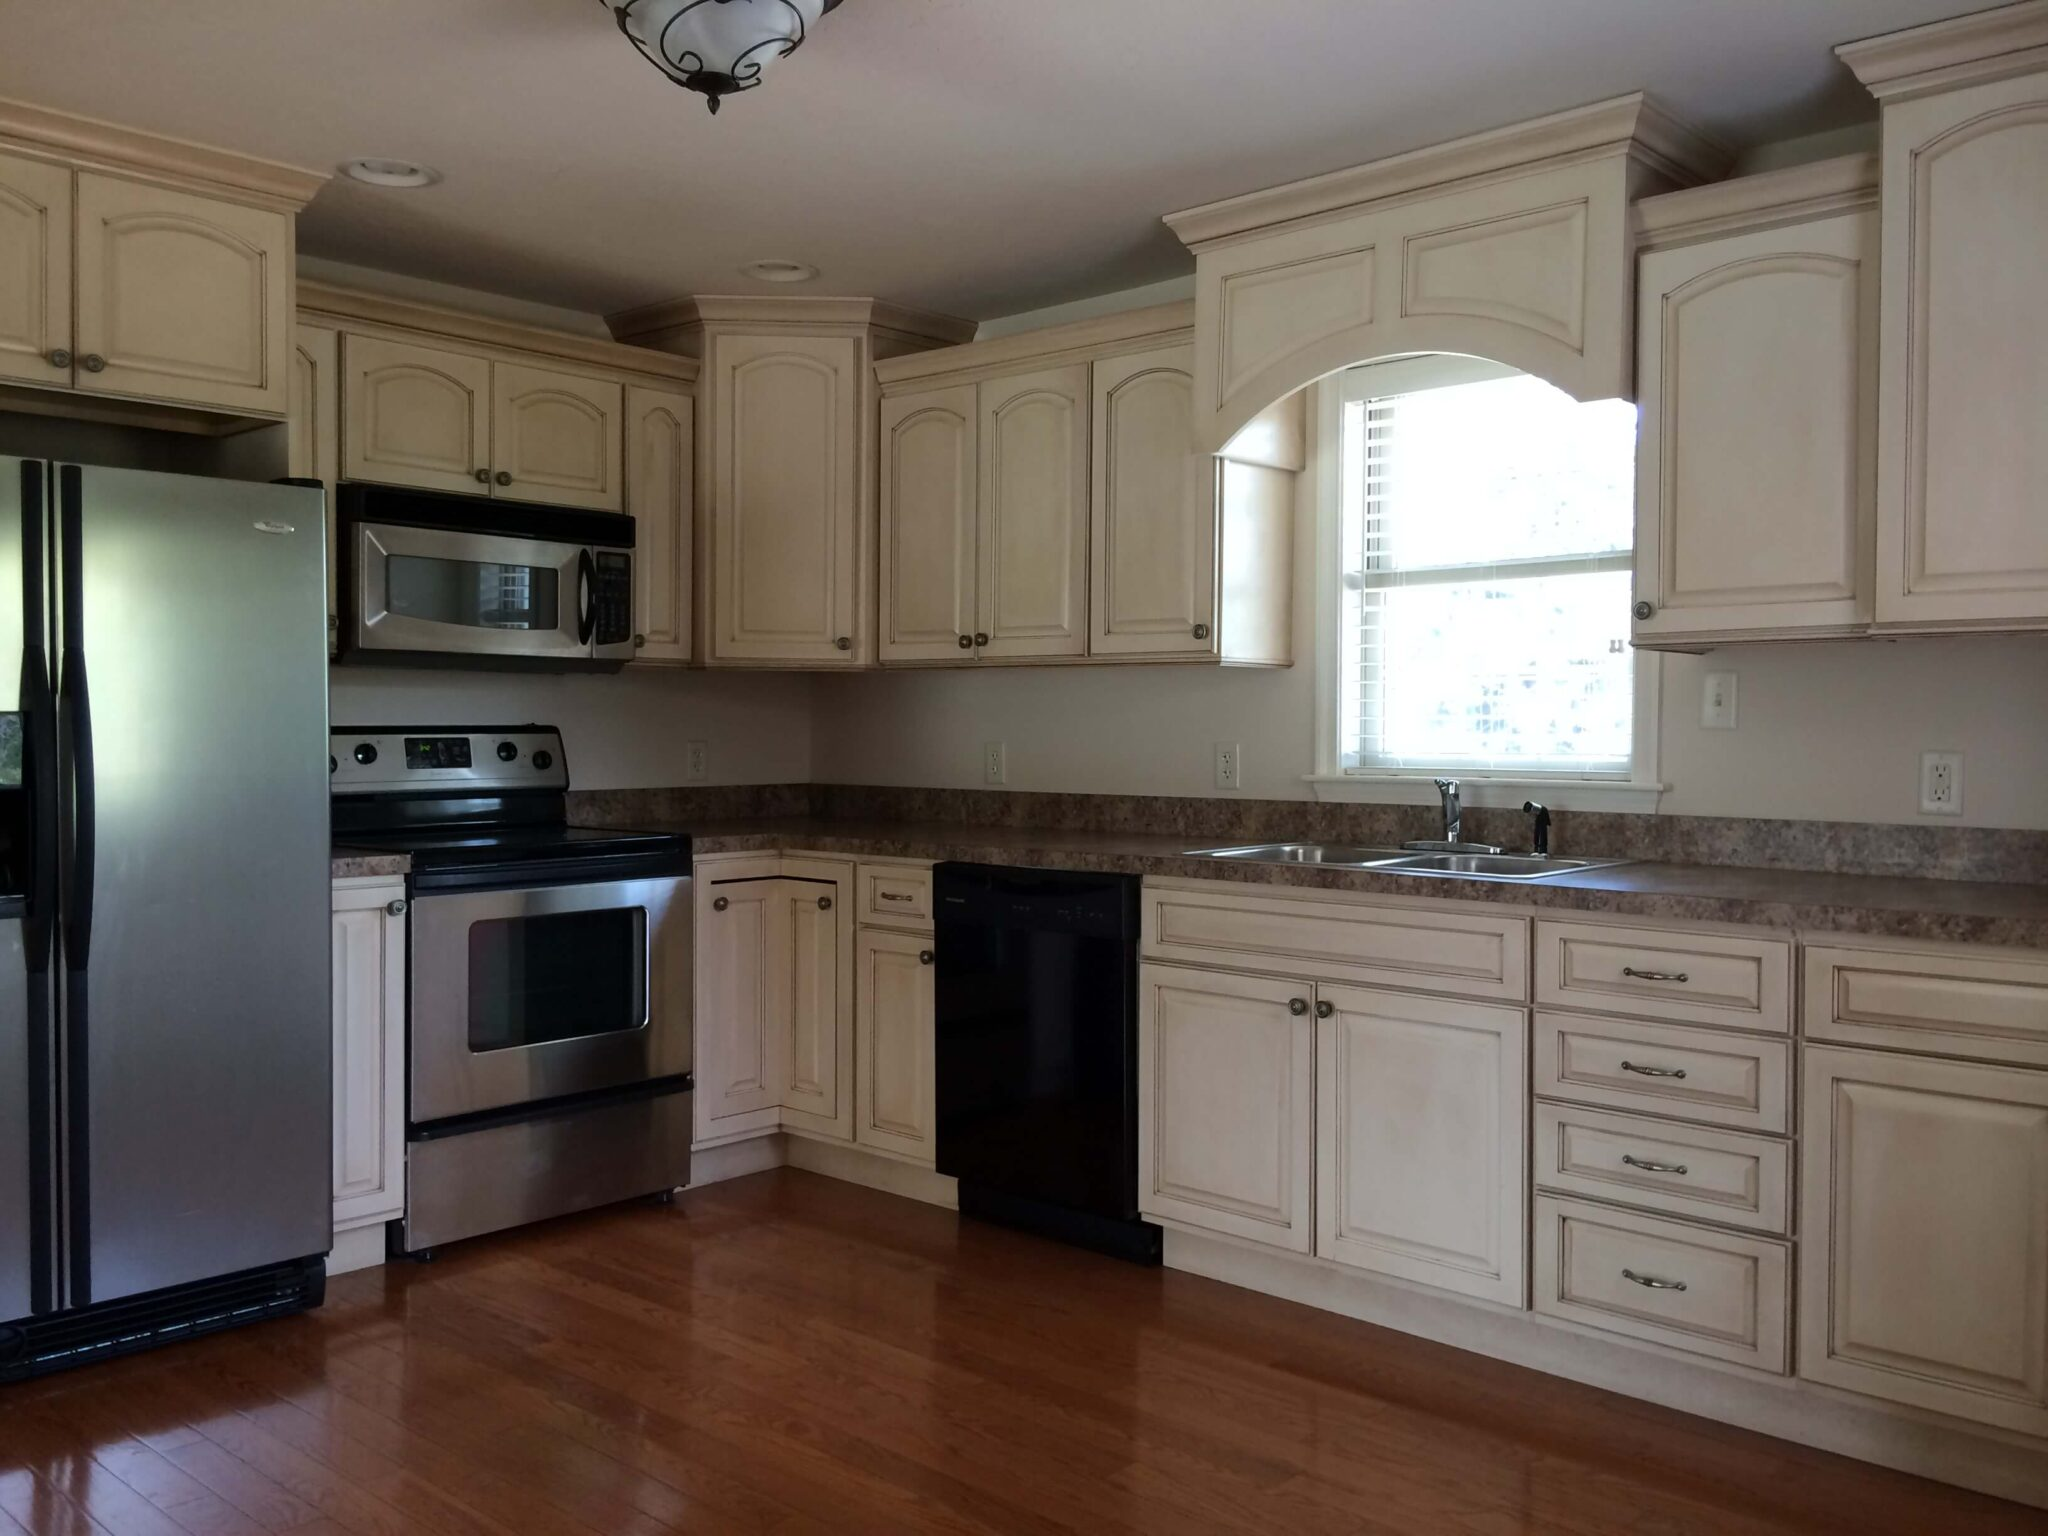 Kitchen Cabinets Baltimore Baltimore Street Kitchen Burkentine Property Management